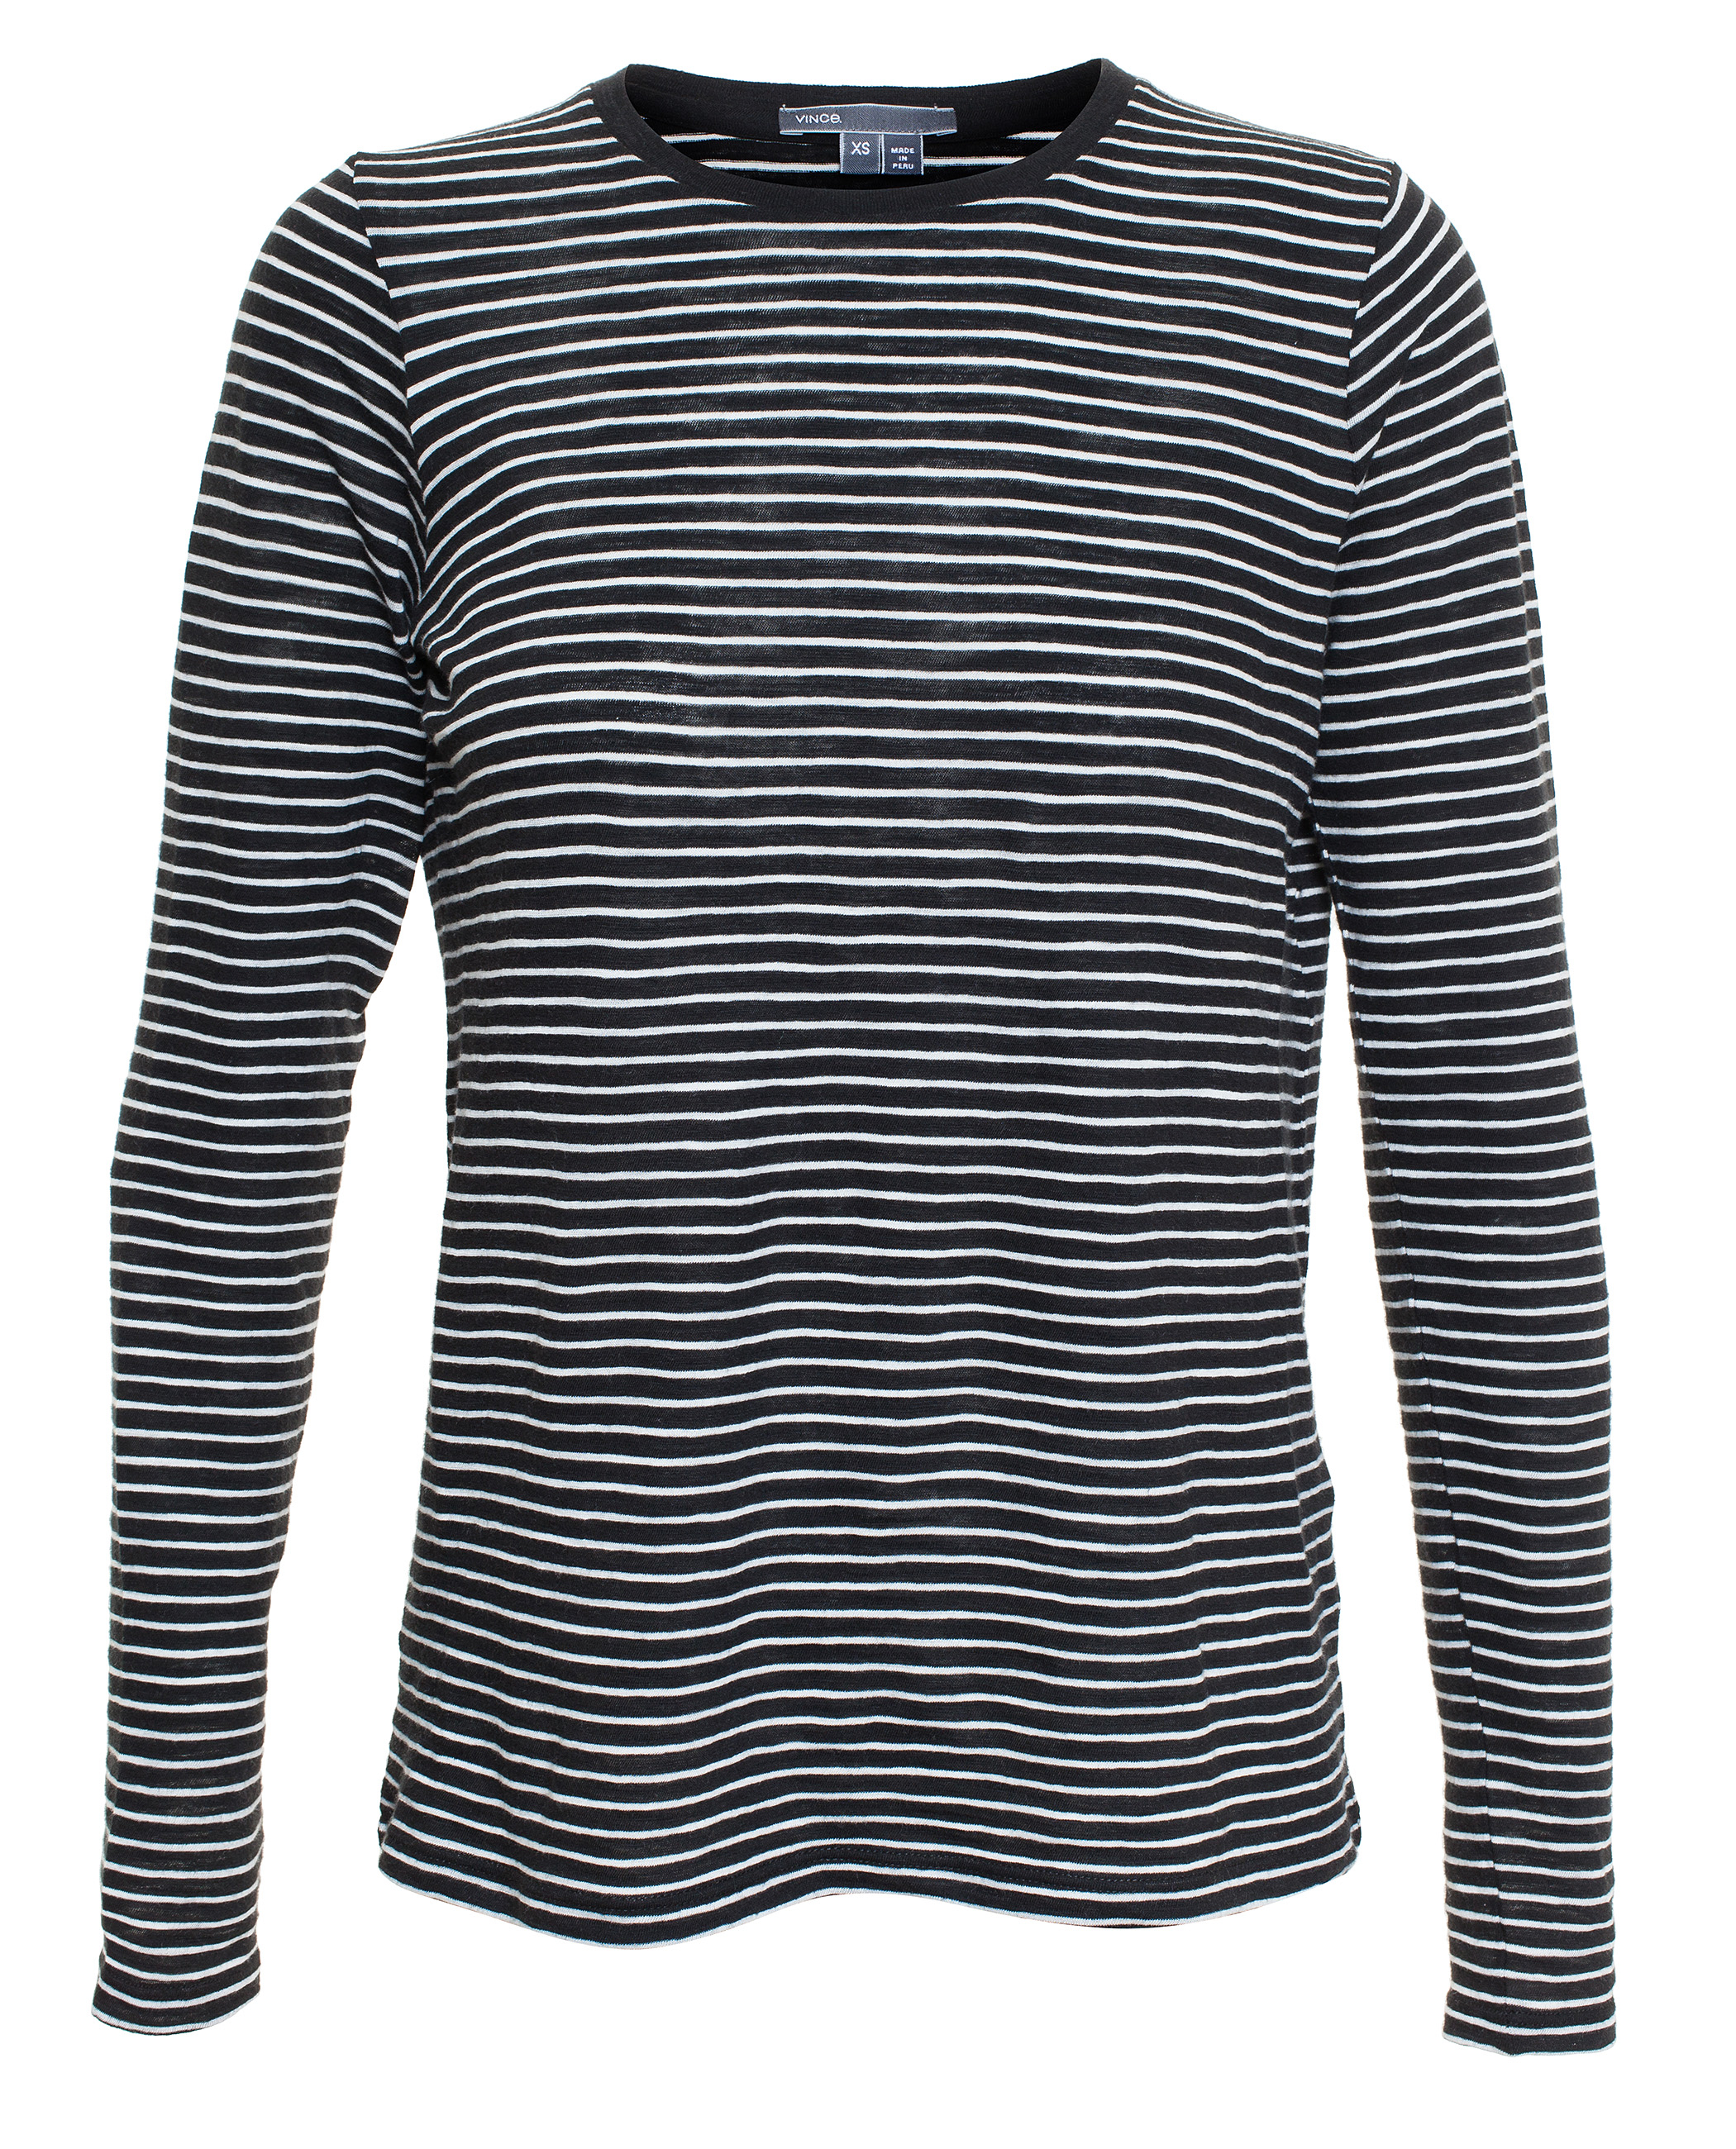 Vince striped long sleeve t shirt in black lyst for Black and white striped long sleeve shirt women